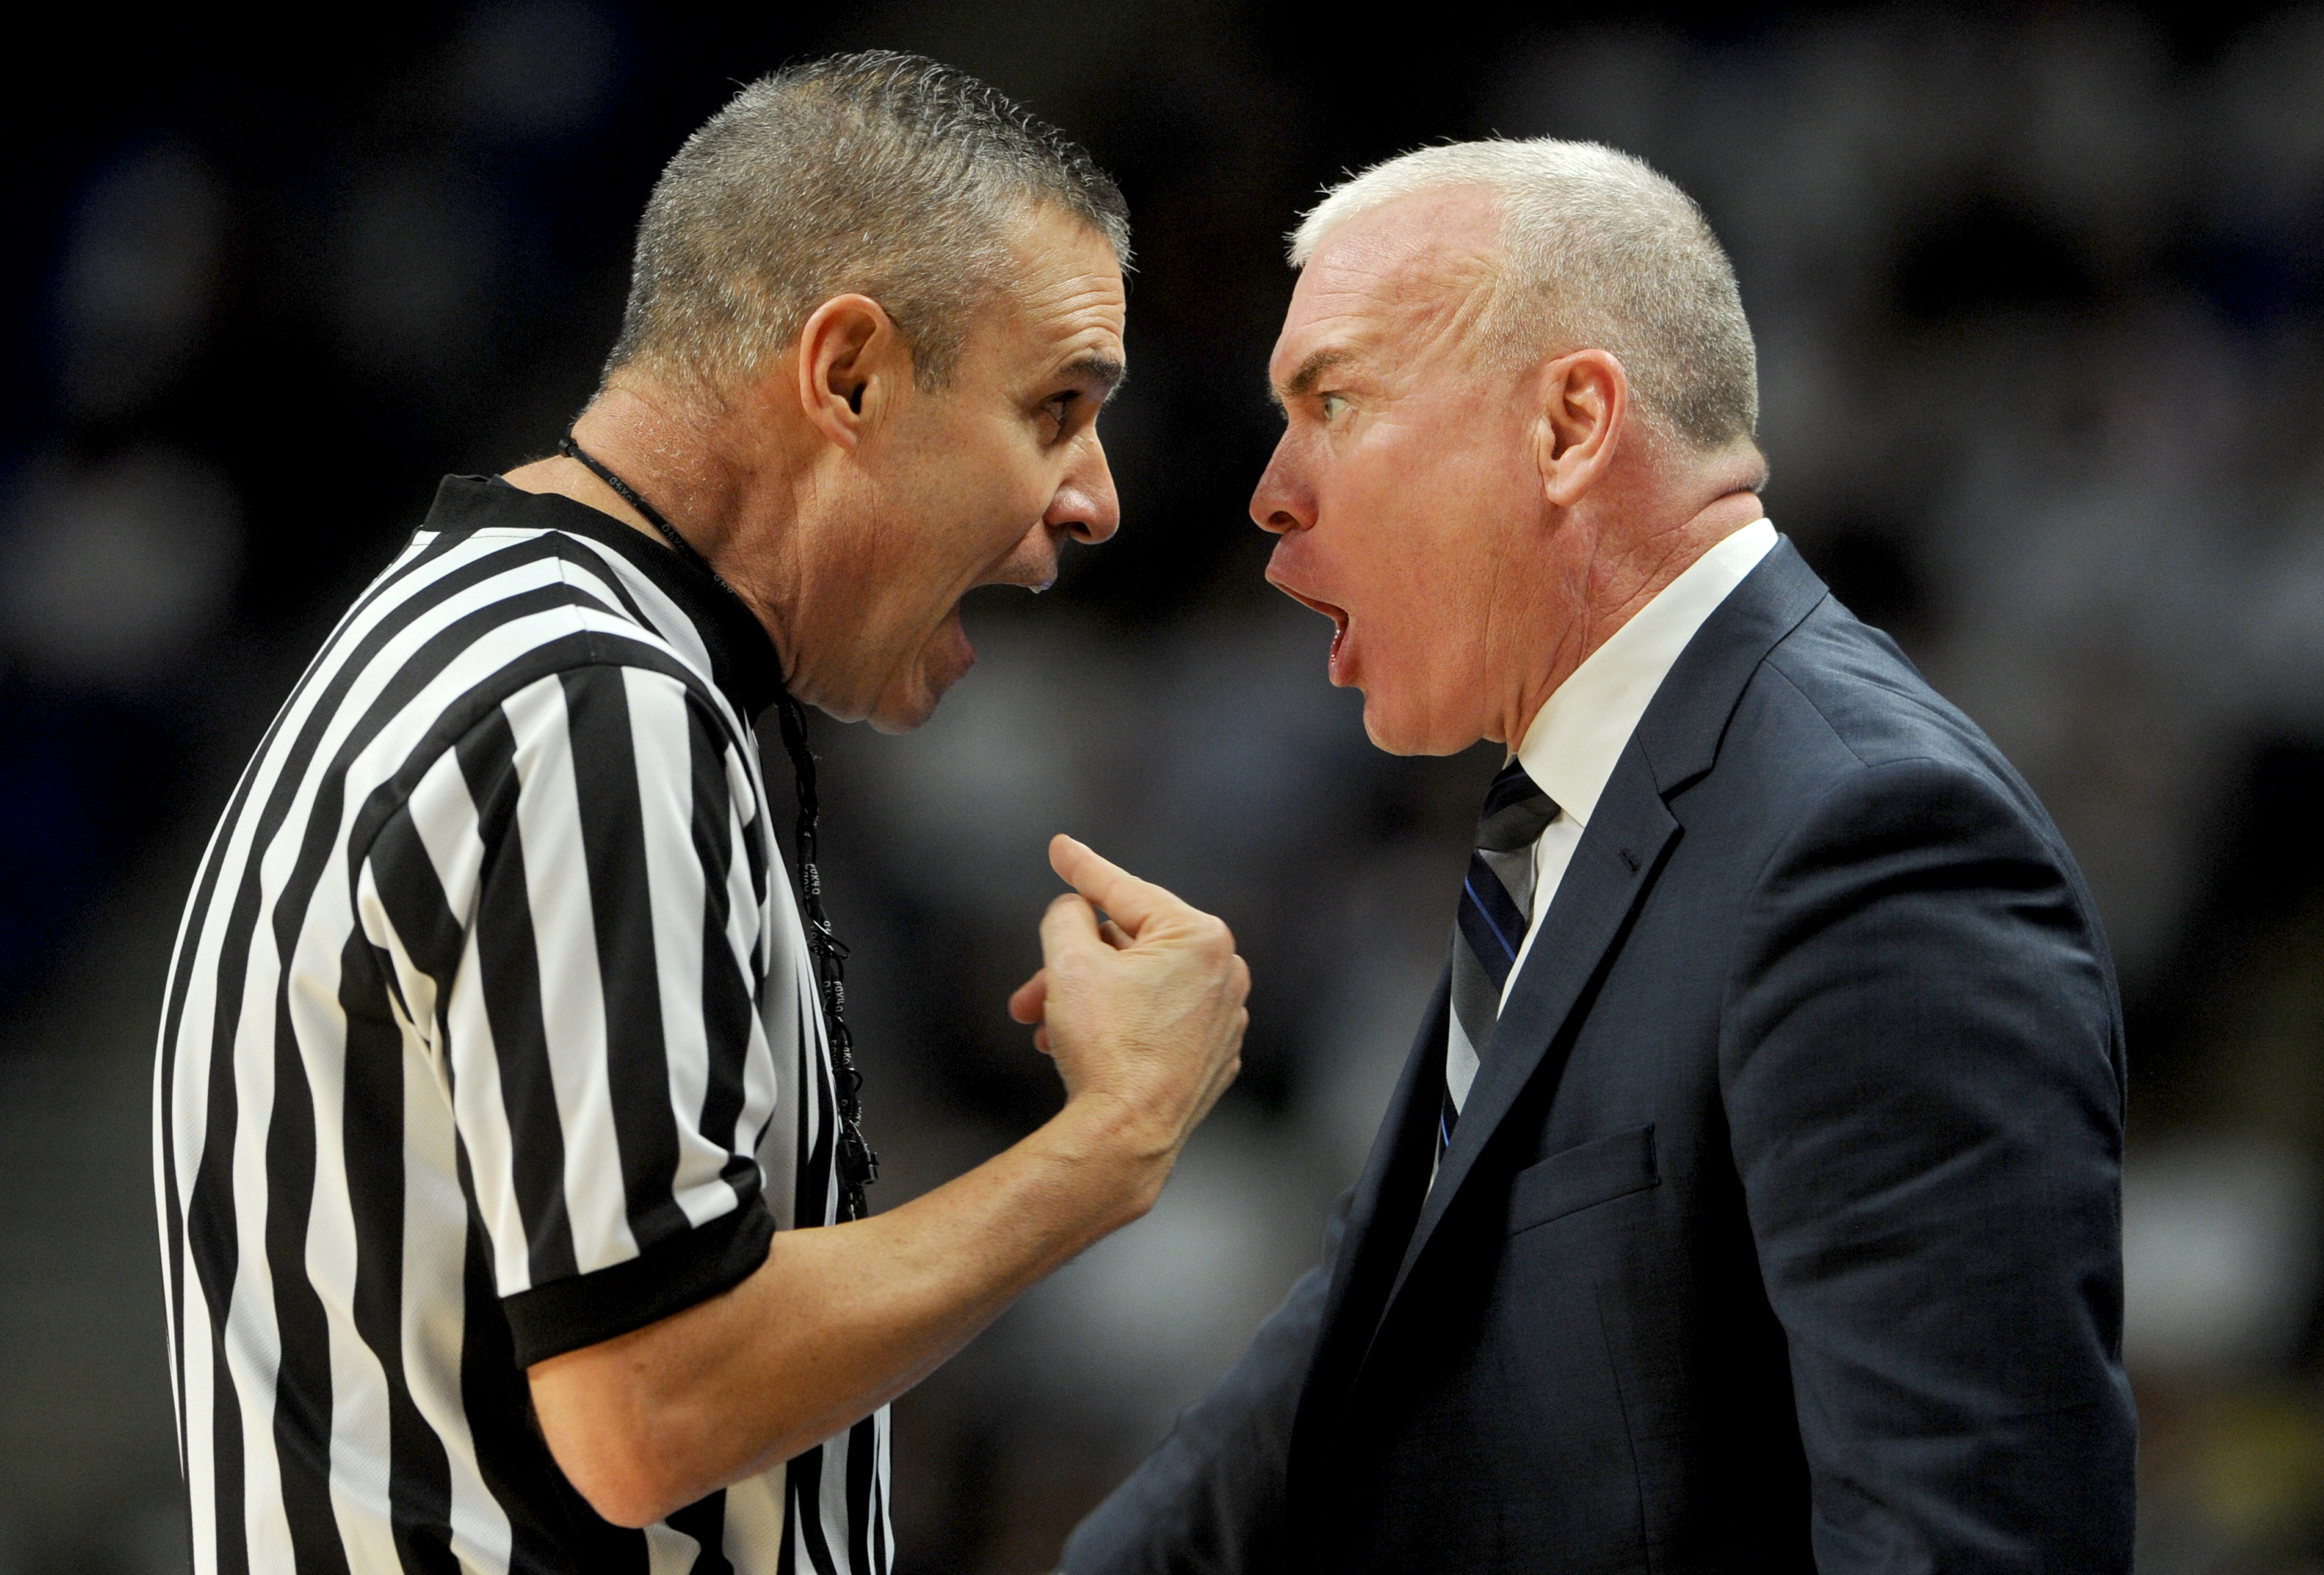 Penn State head coach Patrick Chambers, right, argues with a referee during the first half against Michigan on Wednesday, Feb. 21, 2018, at the Bryce Jordan Center in University Park, Mich. Michigan won, 72-63. (Abby Drey/Centre Daily Times/TNS)